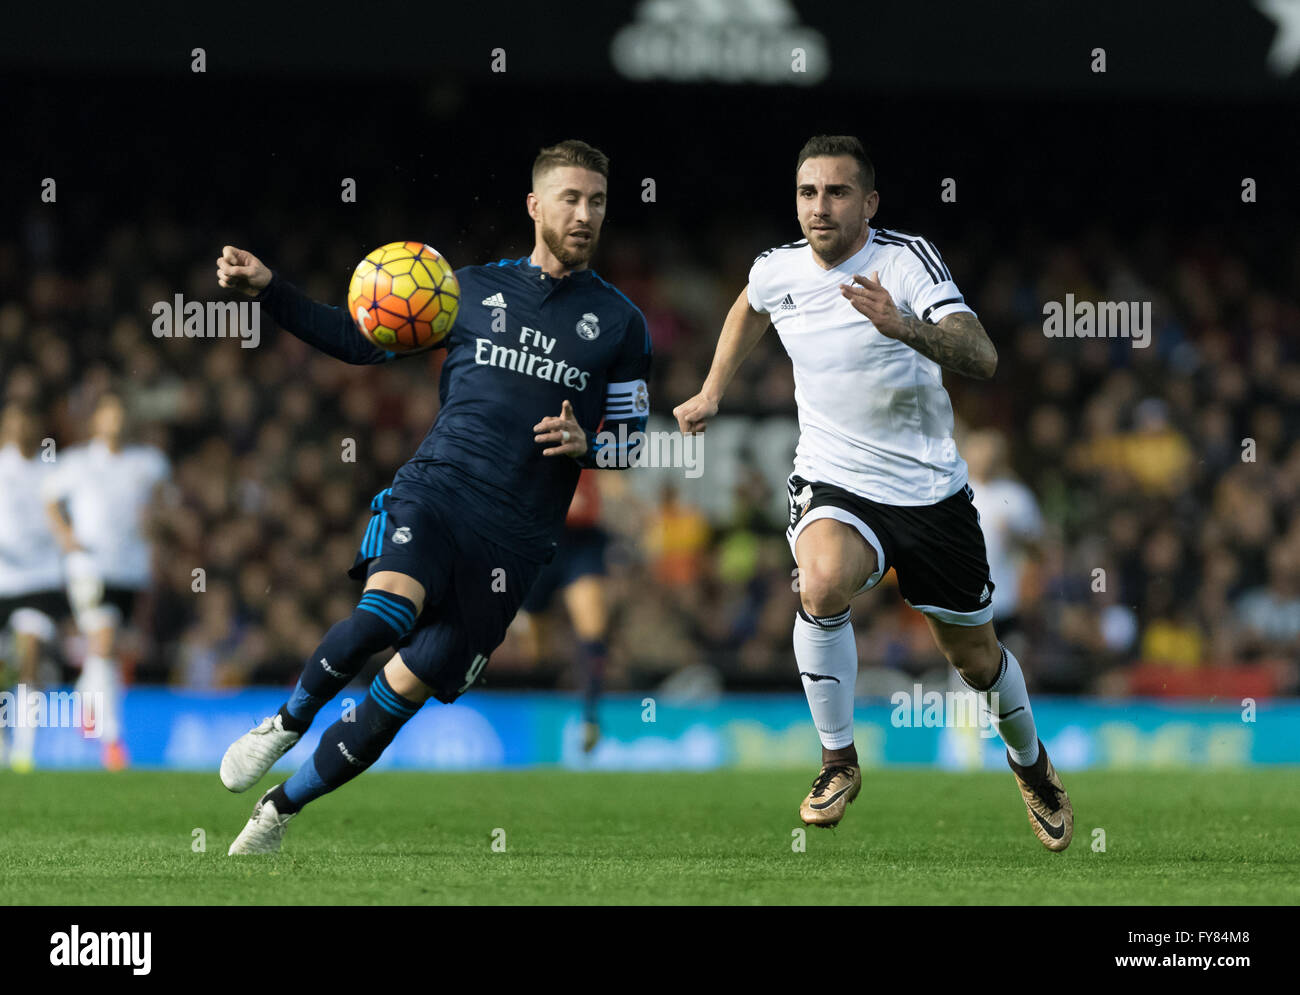 Paco Alcacer of Valencia CF and Sergio Ramos of Real Madrid CF fighting to the ball during the Liga BBVA match, - Stock Image